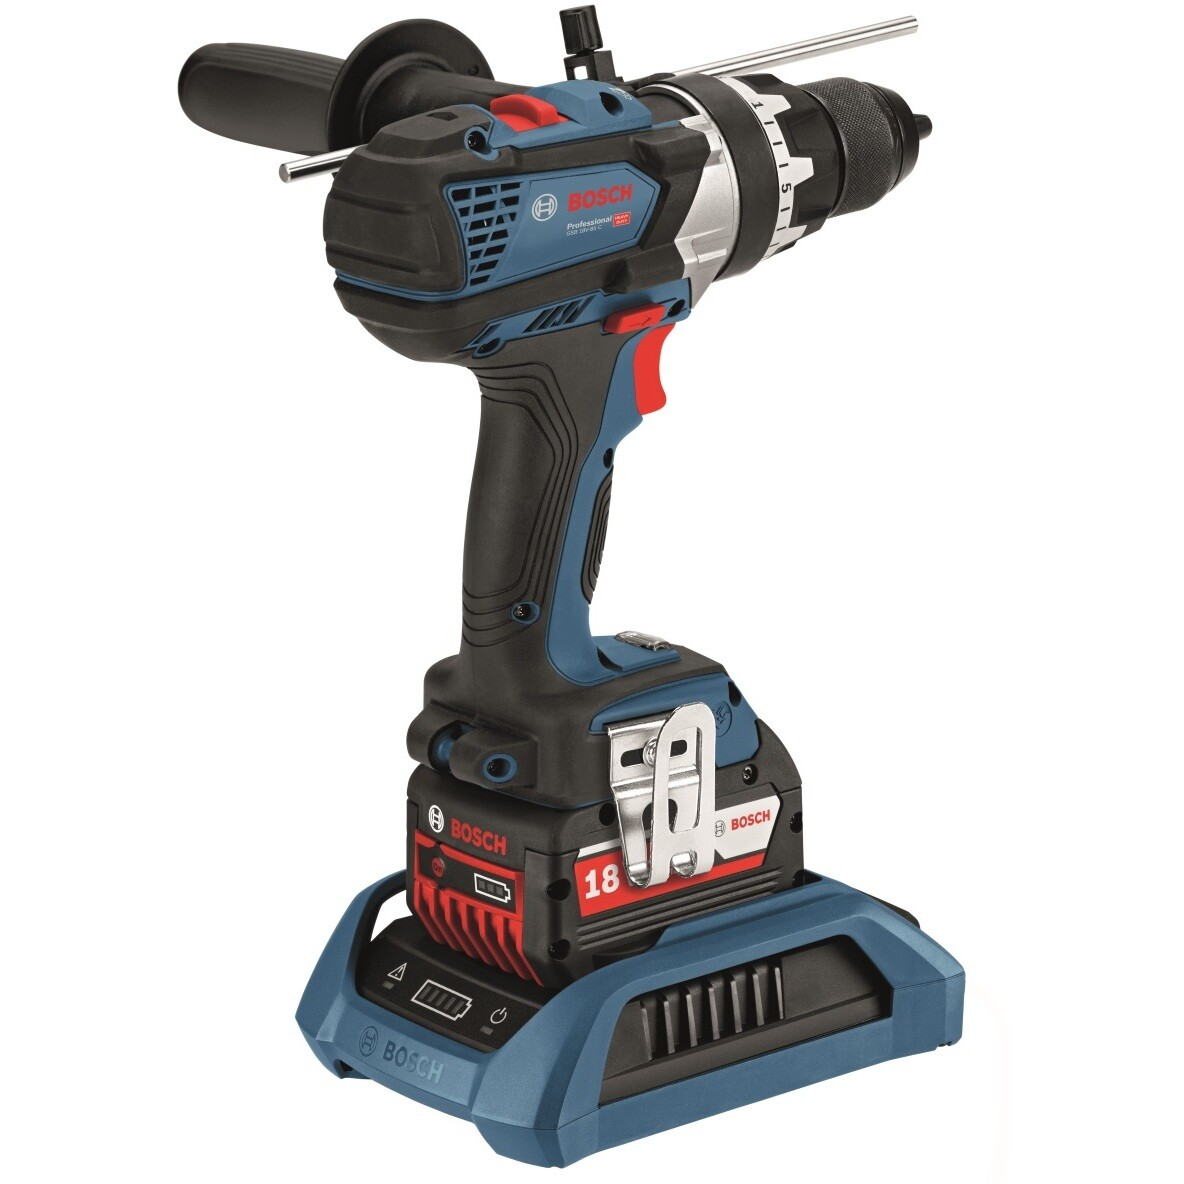 Bosch GSB 18V-85C 18V Connection Ready Combi Drill with 2x 5.0Ah Batteries in L-BOXX